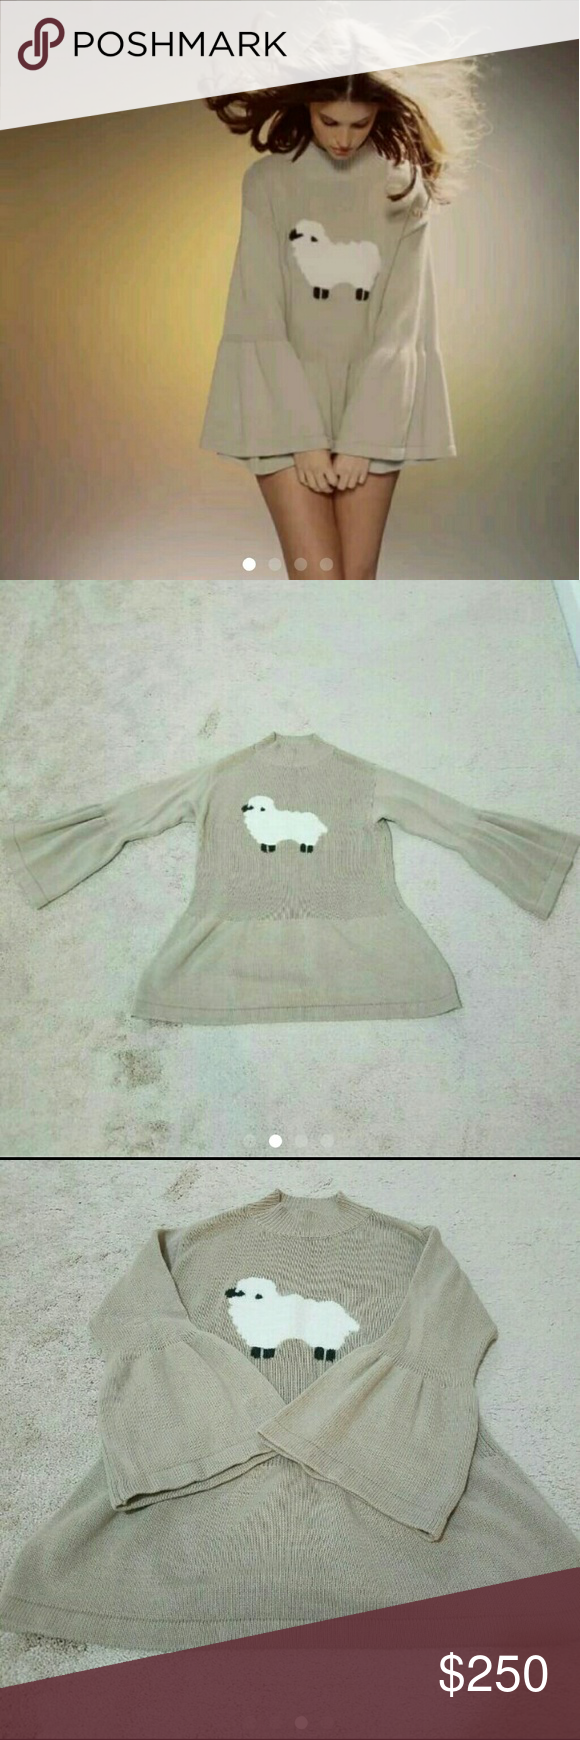 WILDFOX furry sheep sweater NWOT (dry cleaned) Size: S (runs big) Wildfox white label sheep sweater very rare htf. Features bell sleeves and peplum bottom. Super cute. Wildfox Sweaters Cowl & Turtlenecks